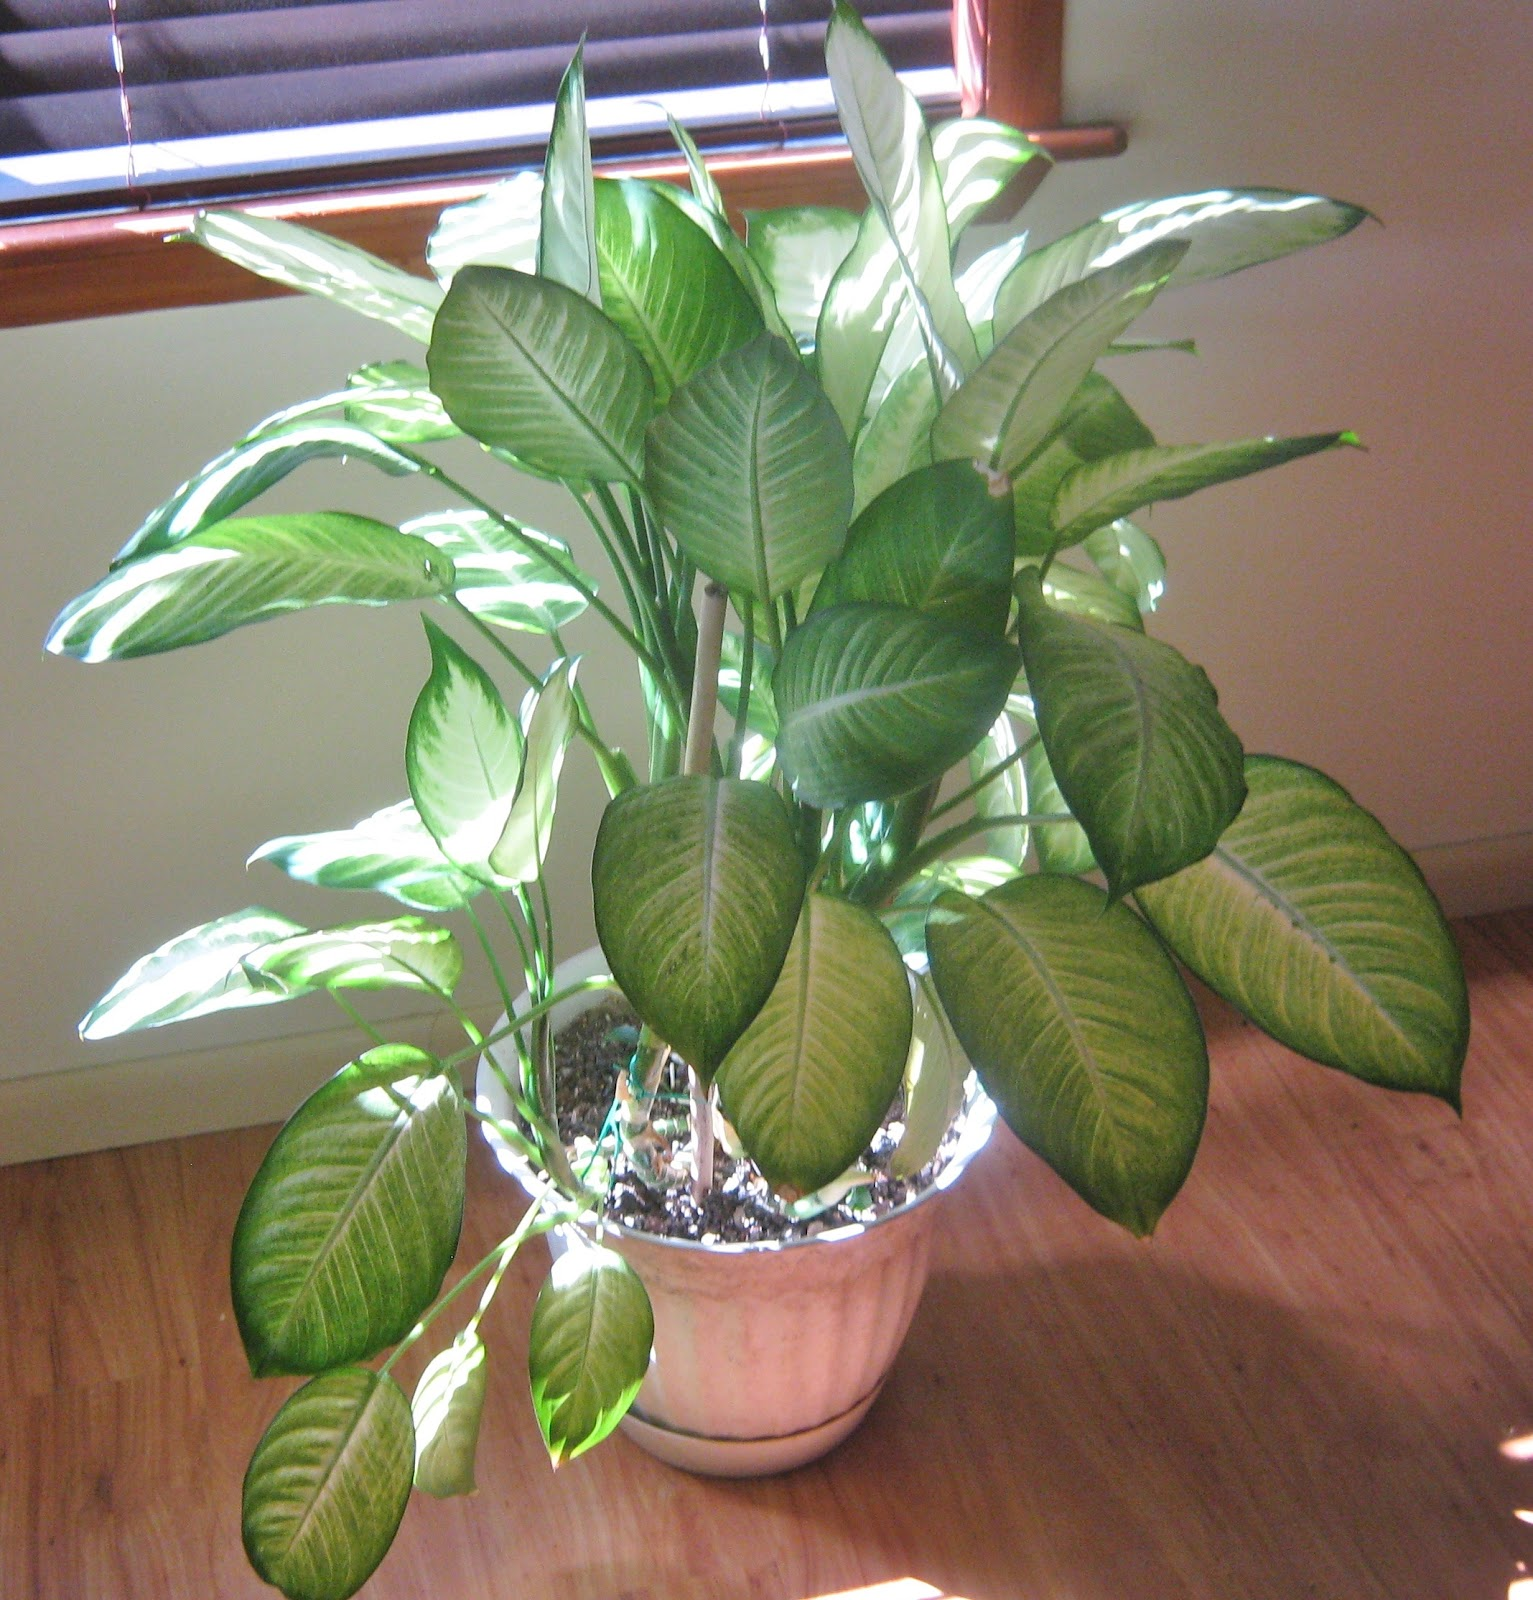 living stingy: the secret to houseplants